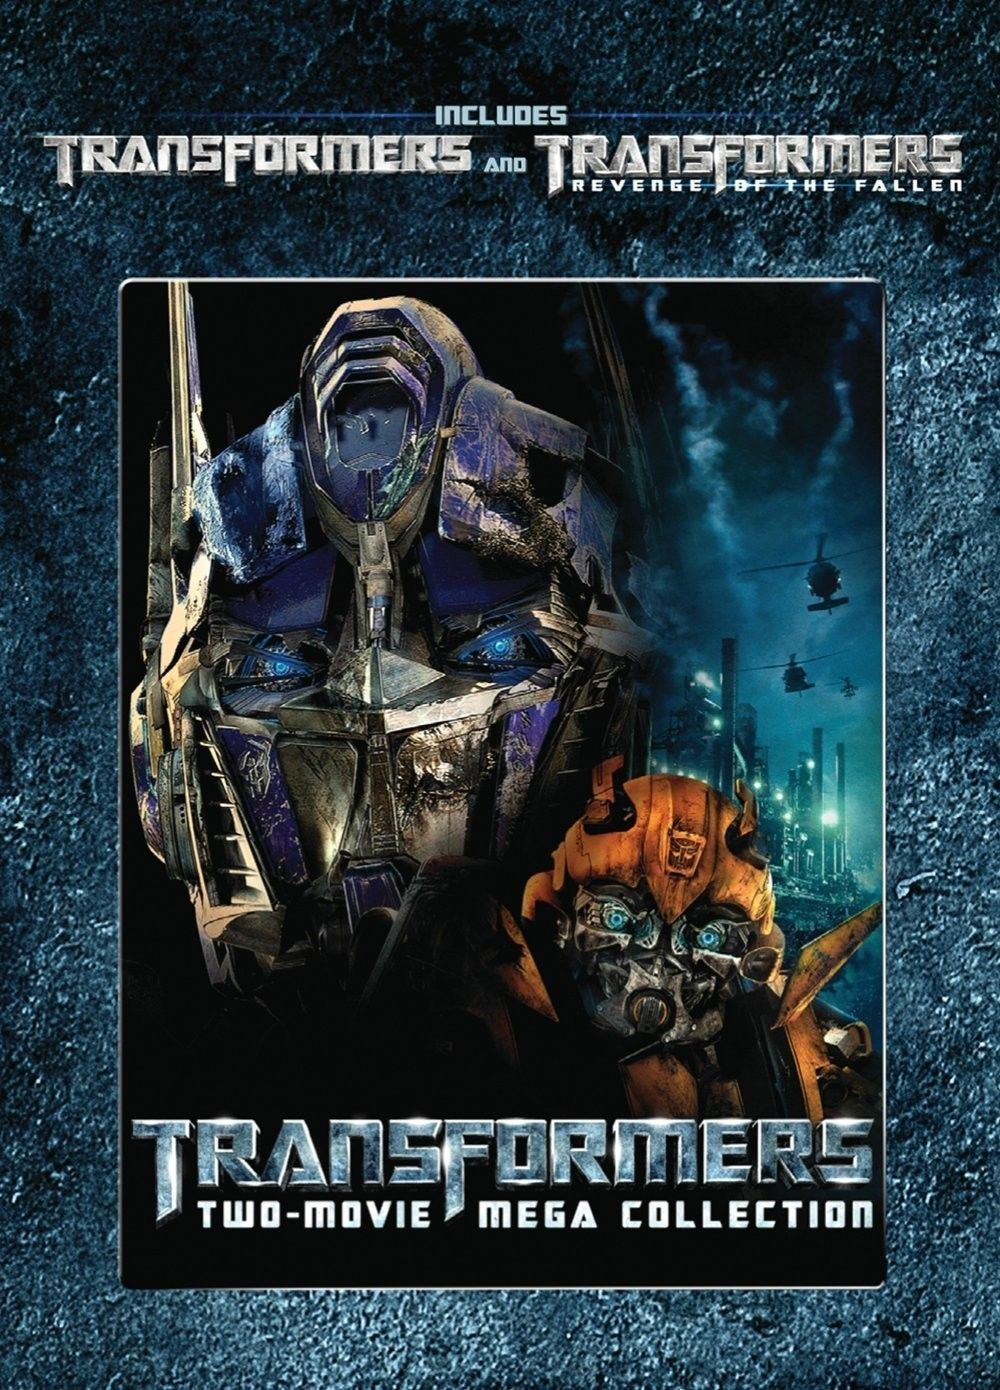 Transformers and Transformers: Revenge of the Fallen-Two-Movie Mega Coll